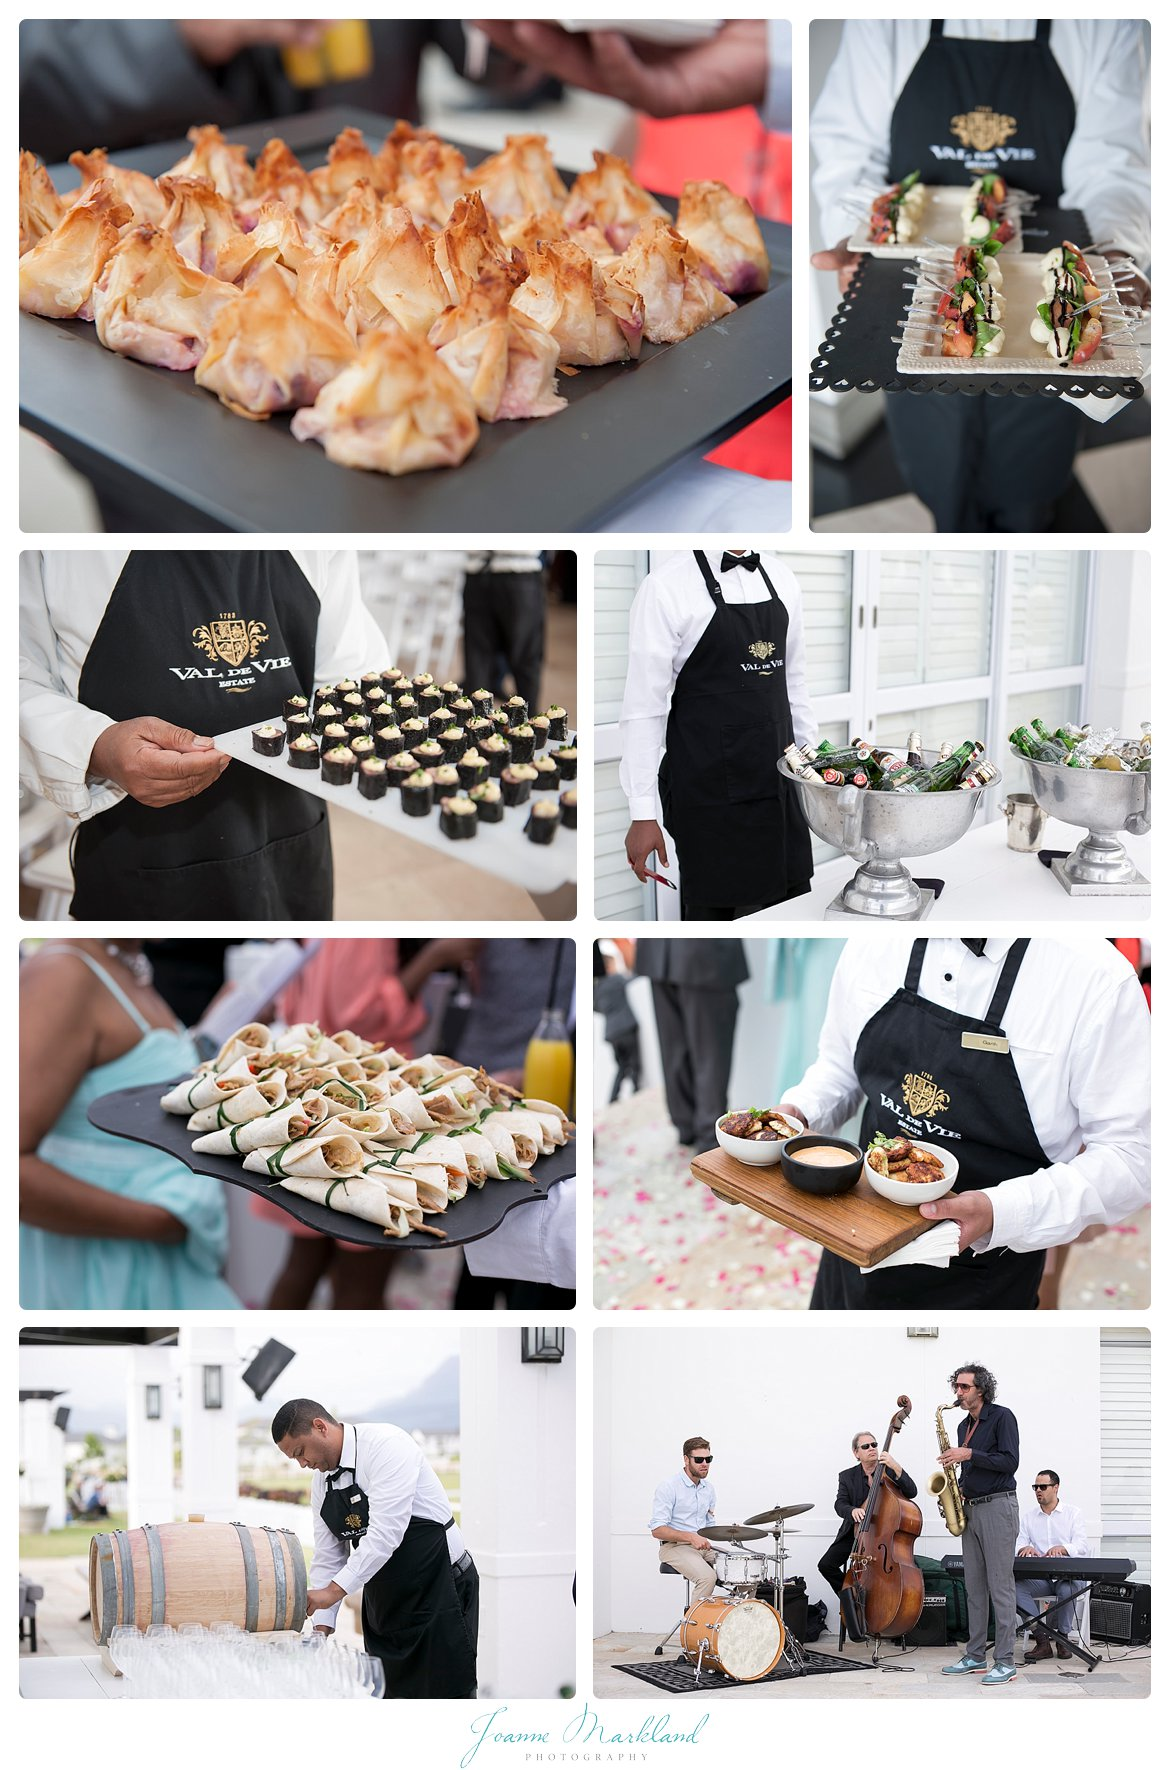 Val_de_vie_wedding_joanne_markland_photography_paarl-033